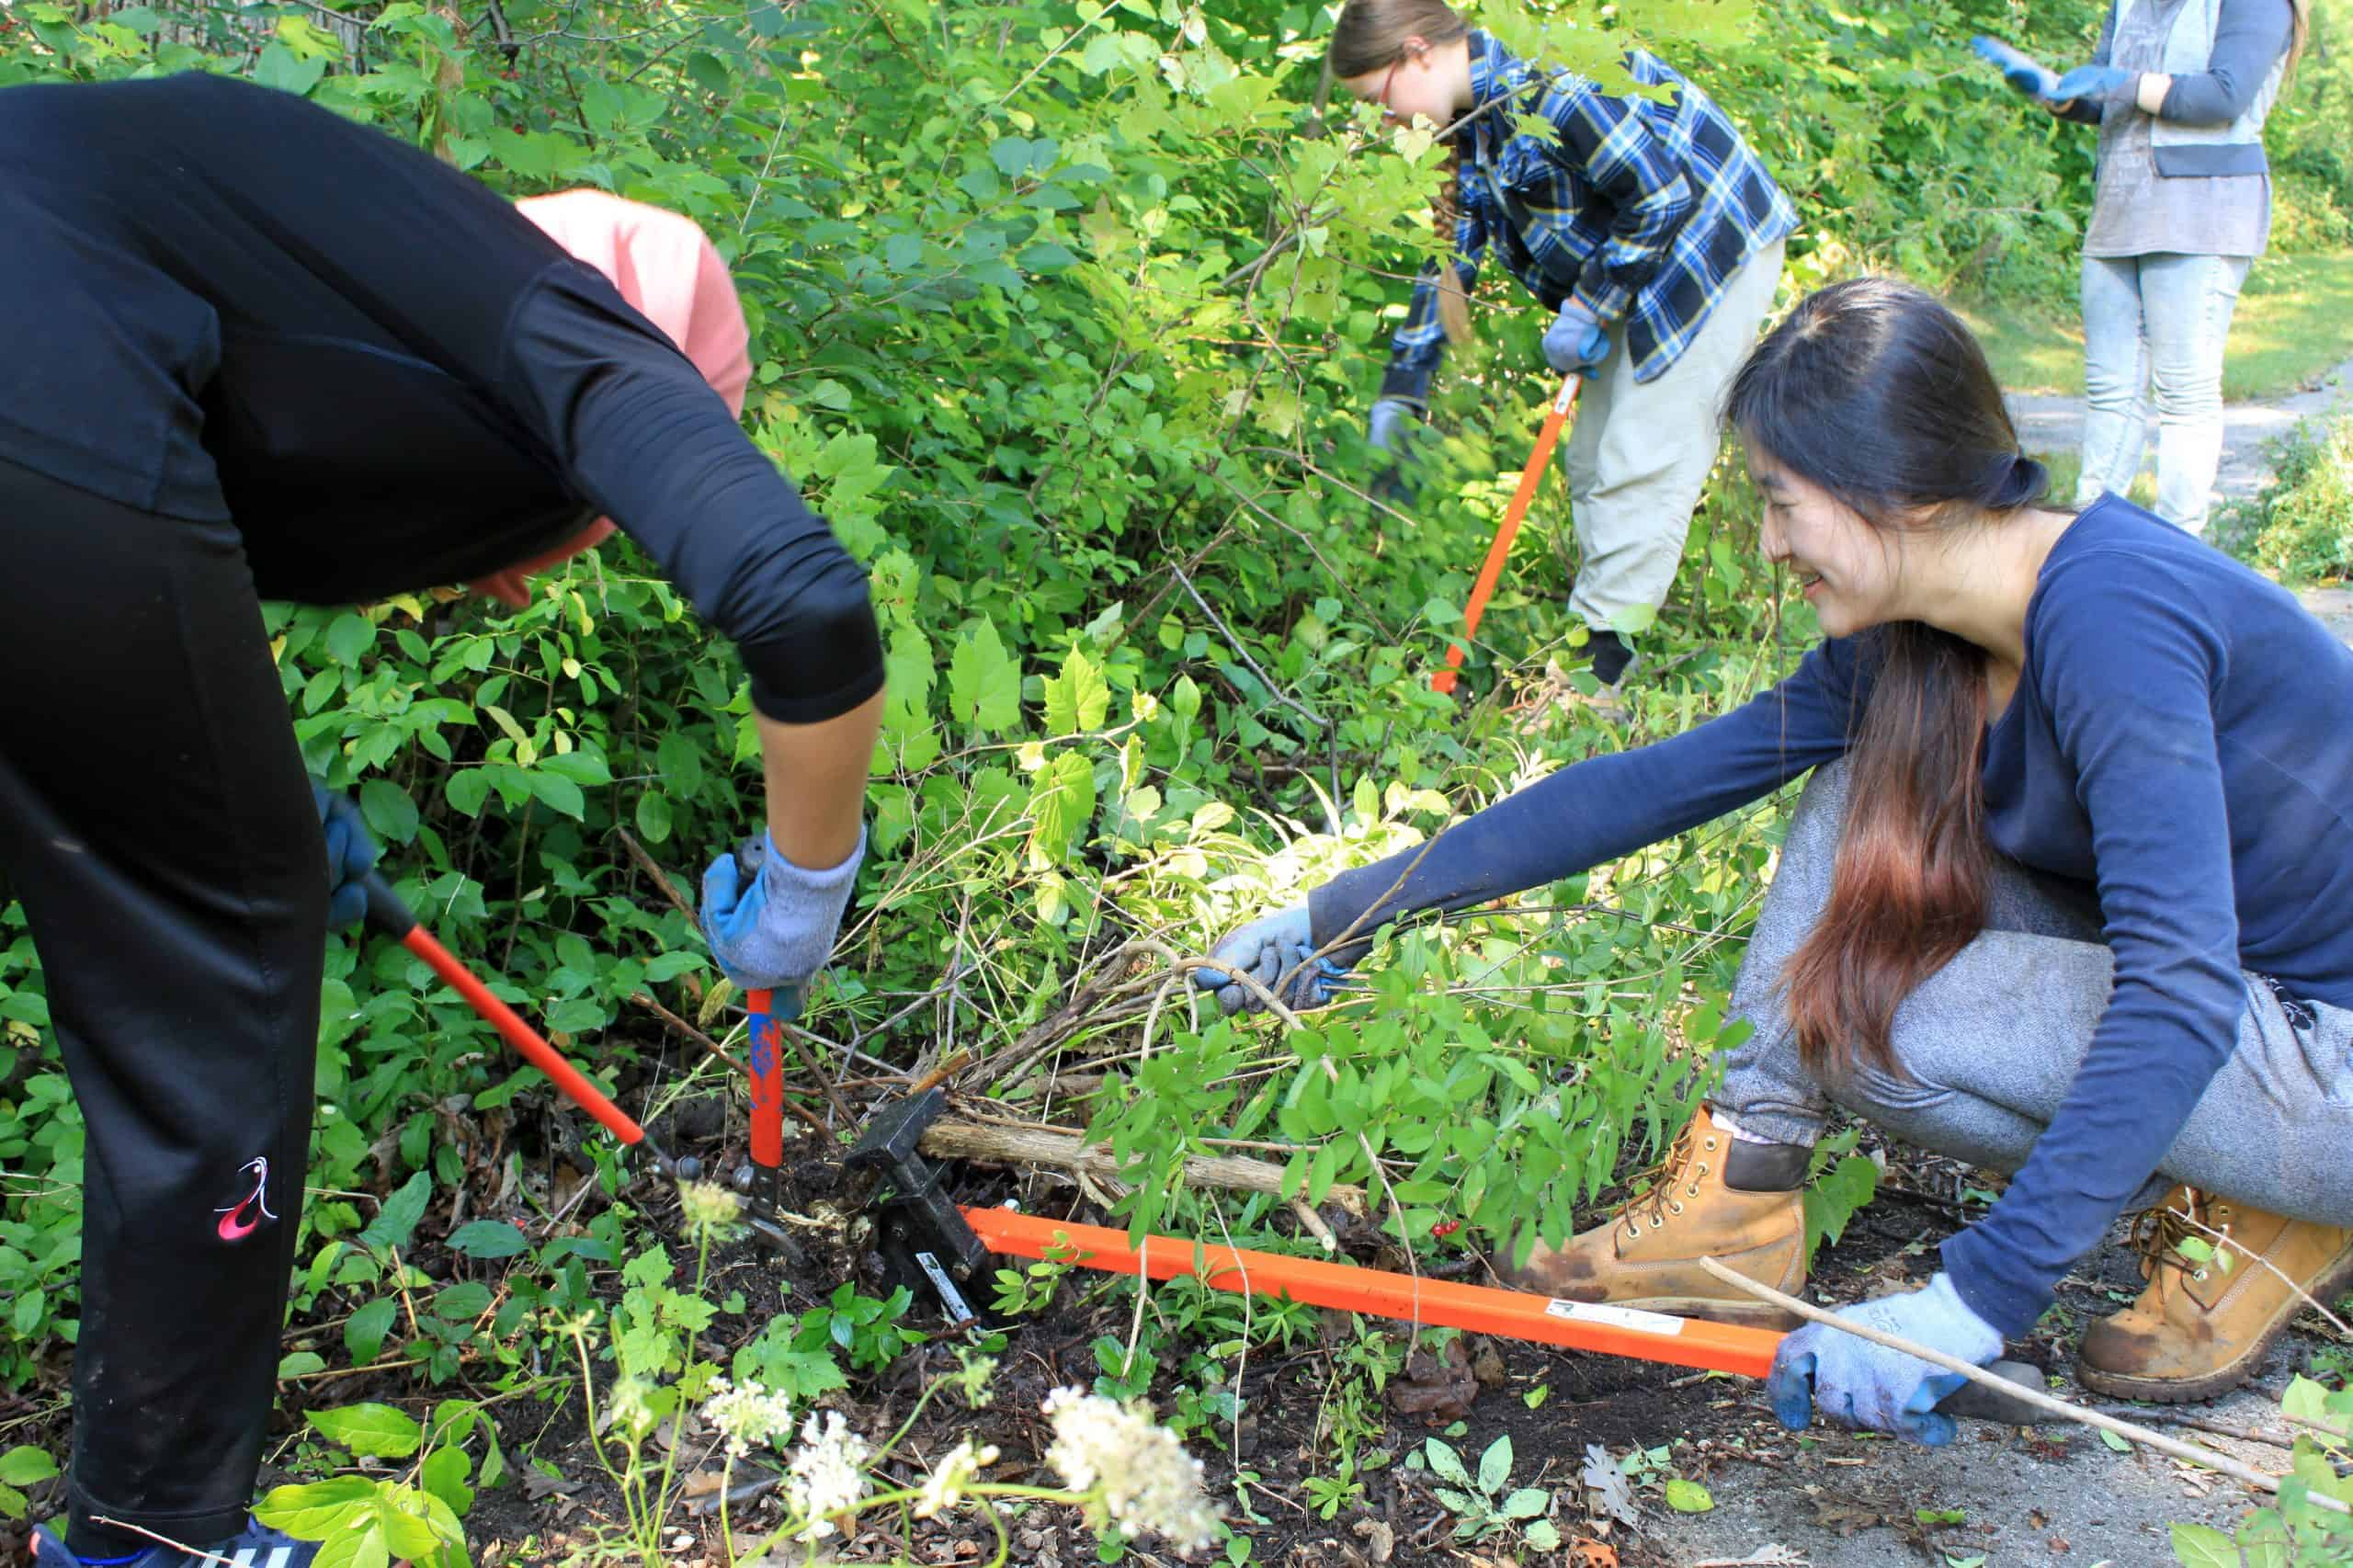 a group of teens using hand tools to remove invasive species